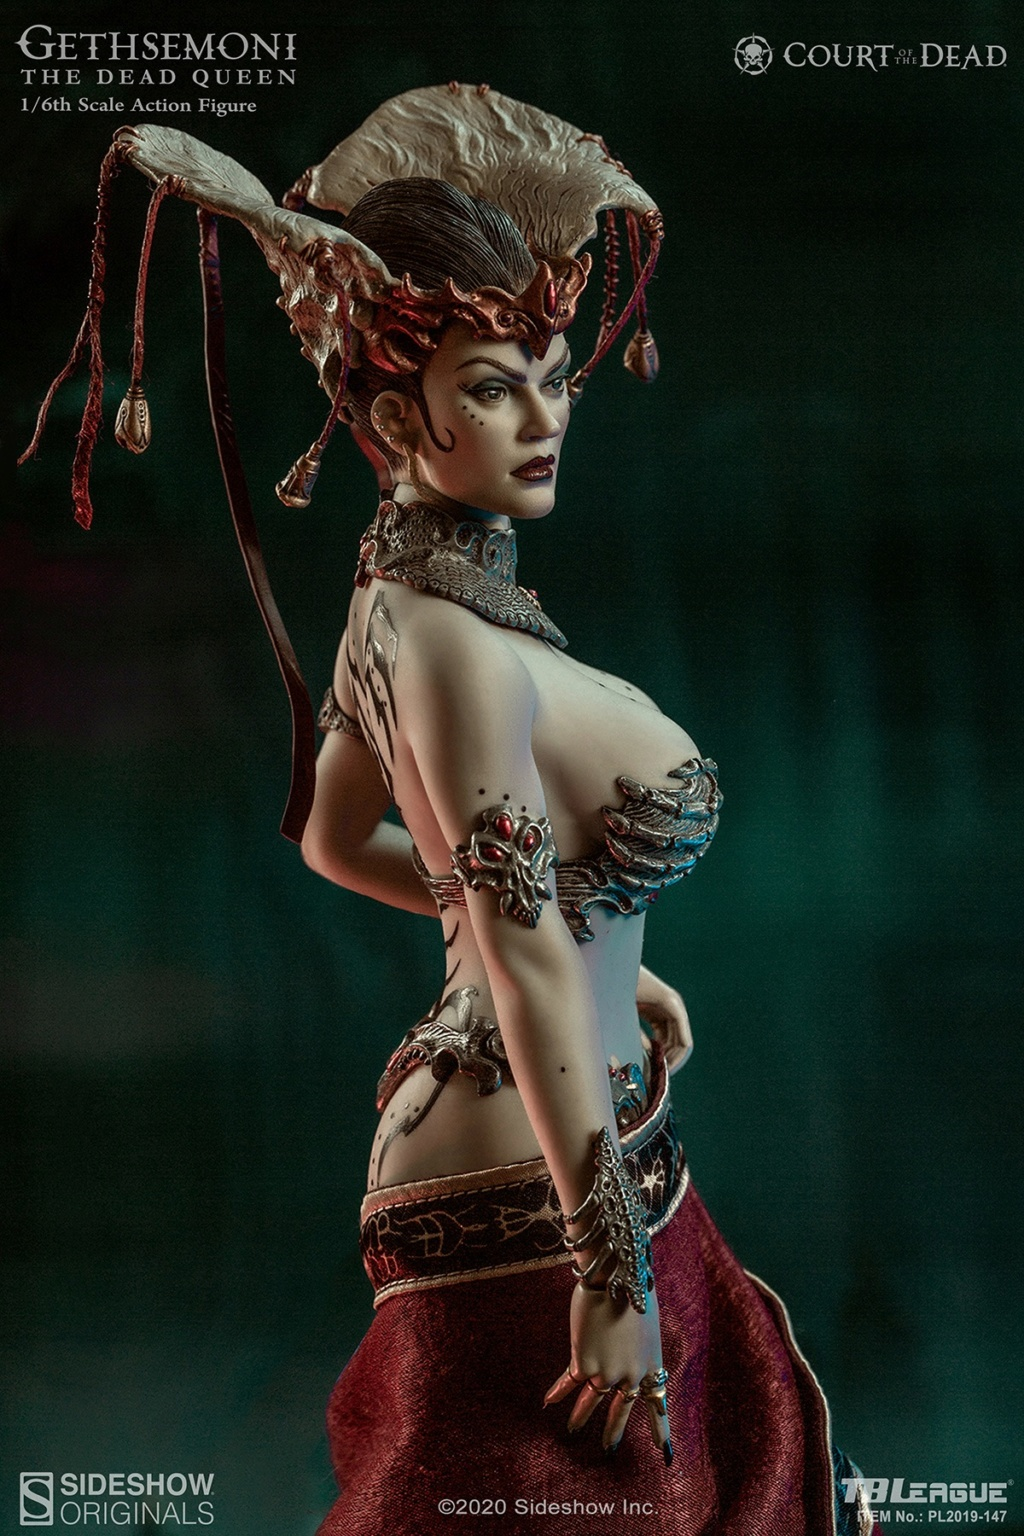 sideshow - NEW PRODUCT: Tbleague x SIDESHOW New: 1/6 Court of the Dead: Gethsemoni The Dead Queen action figure (PL2019-147) 16503512